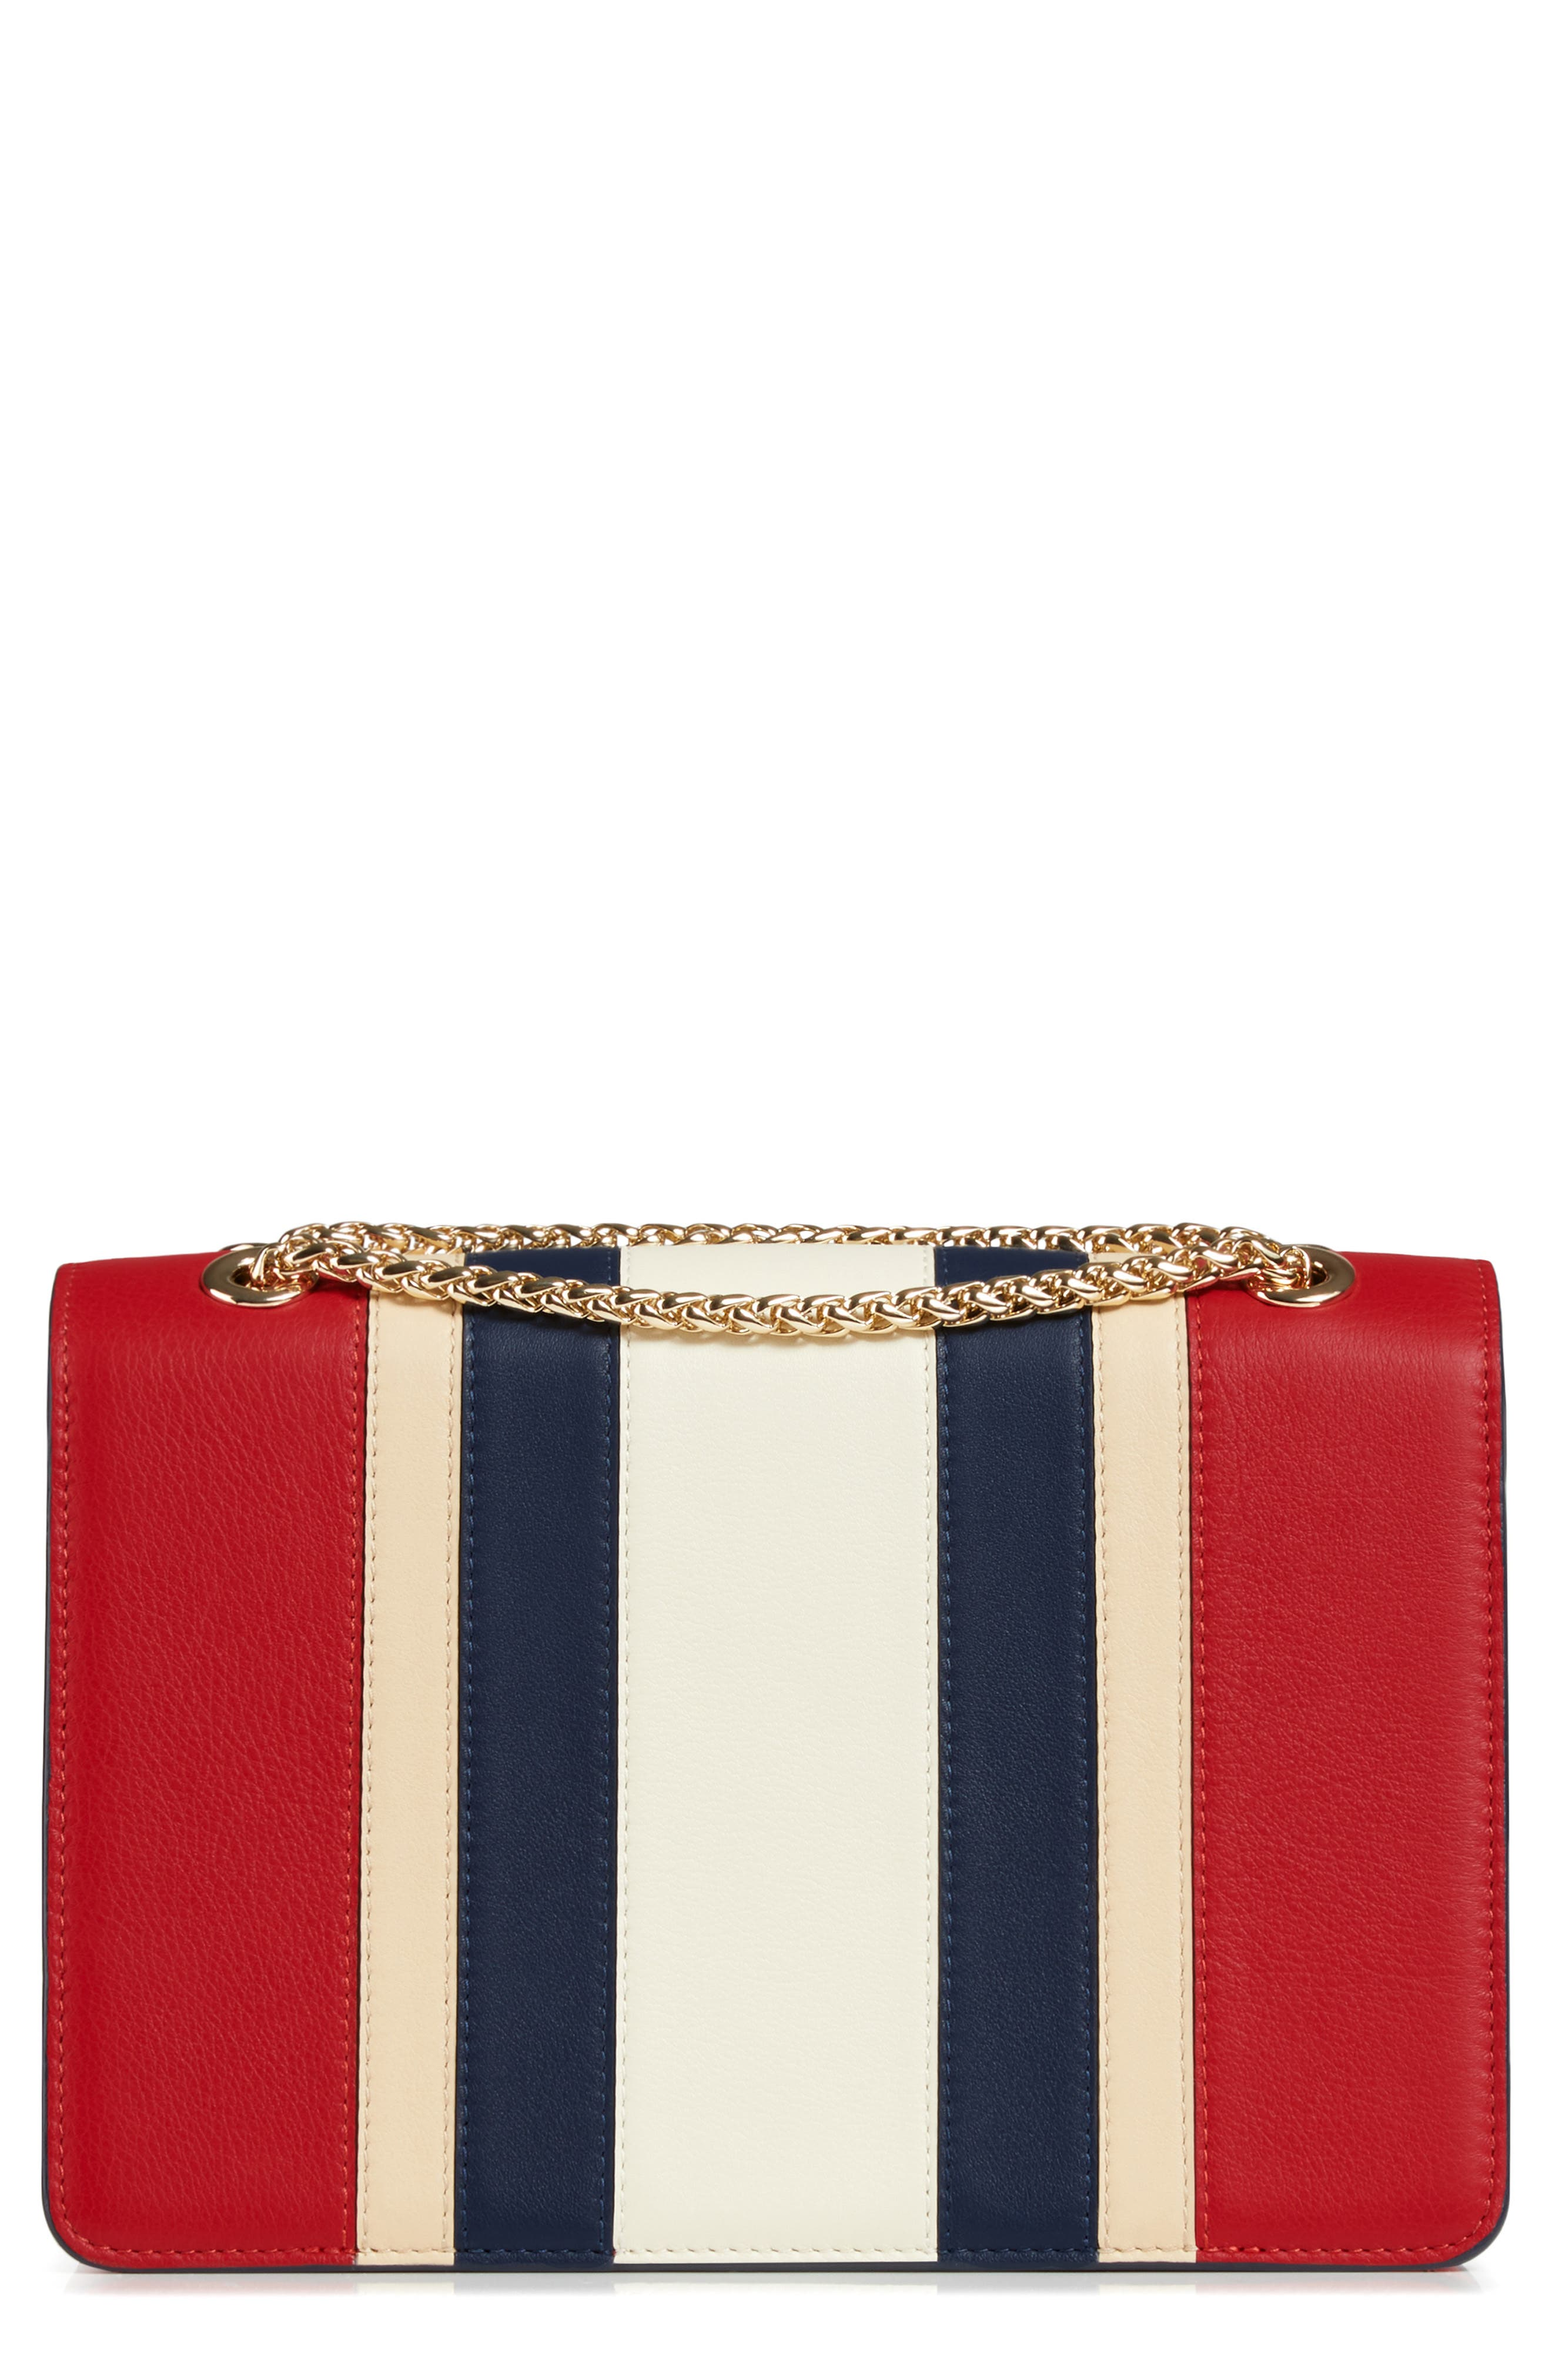 East/West Stripe Leather Crossbody Bag,                             Alternate thumbnail 2, color,                             600